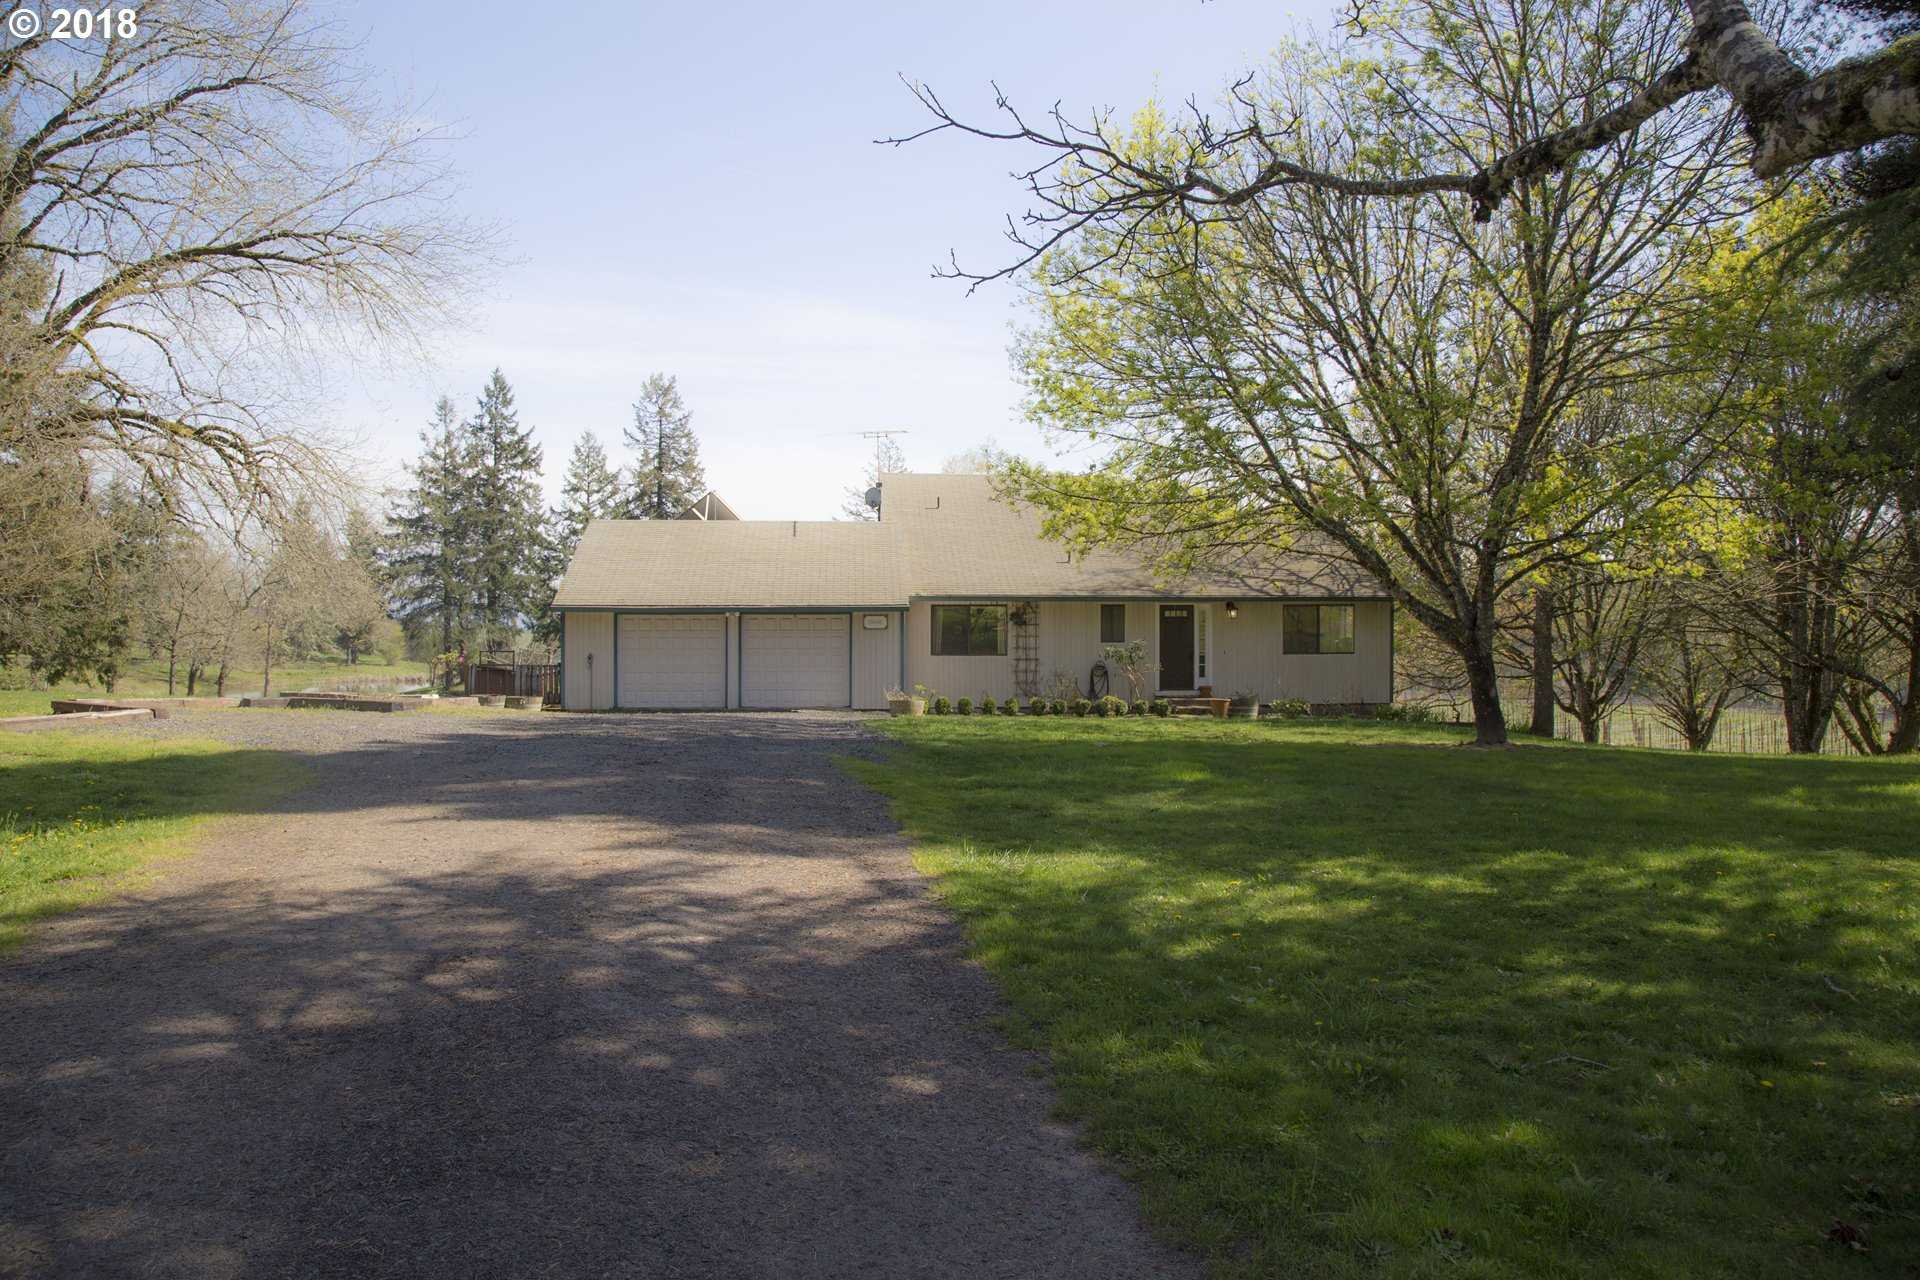 $3,150,000 - 3Br/3Ba -  for Sale in Newberg